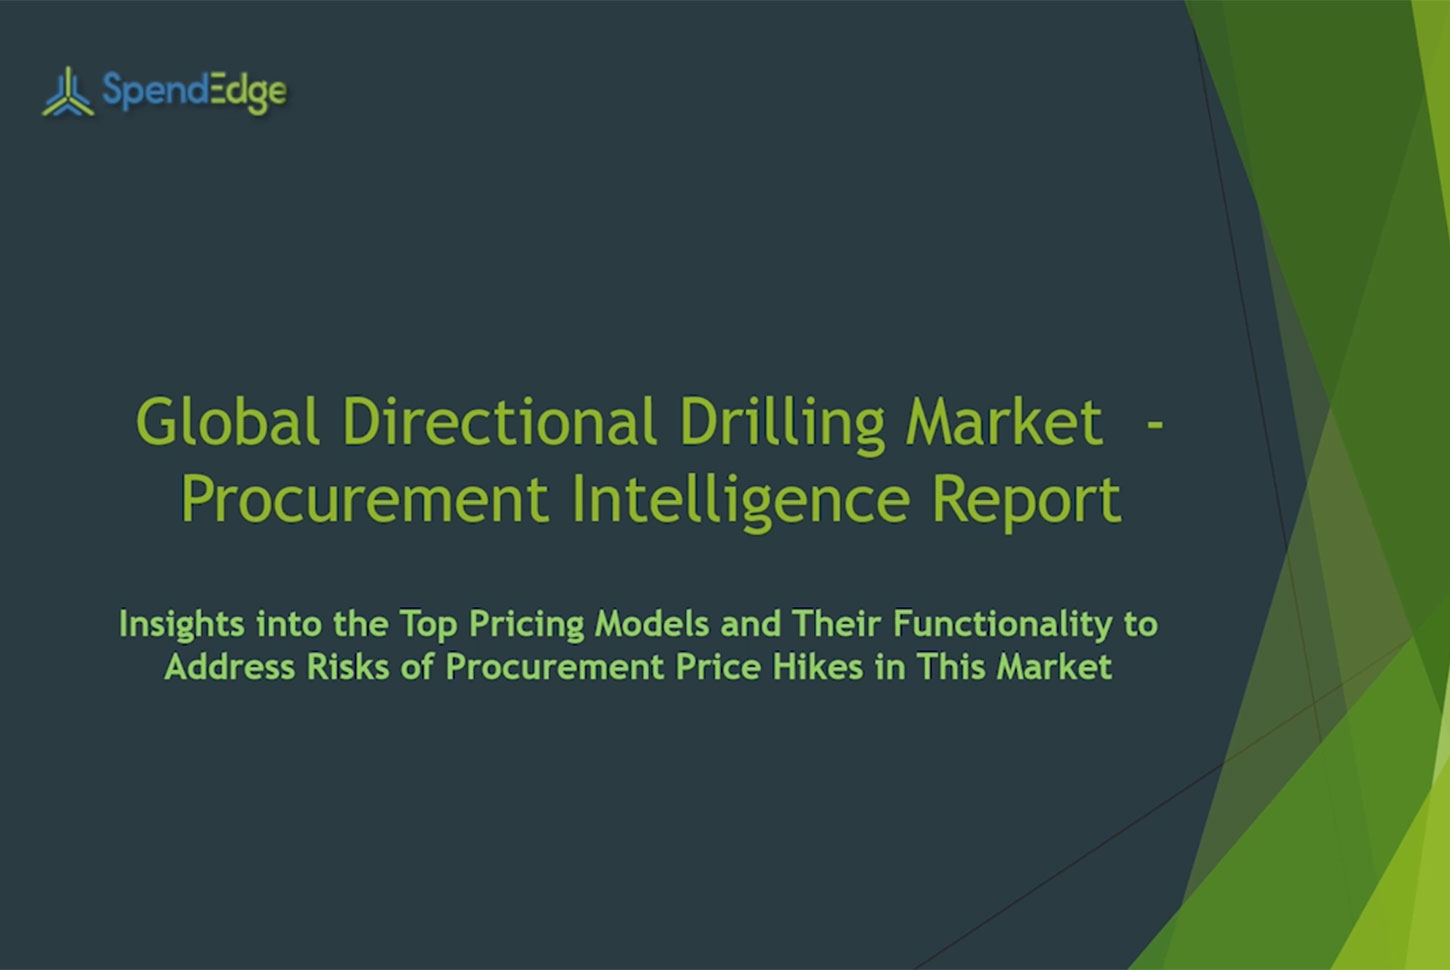 SpendEdge has announced the release of its Global Directional Drilling Market Procurement Intelligence Report